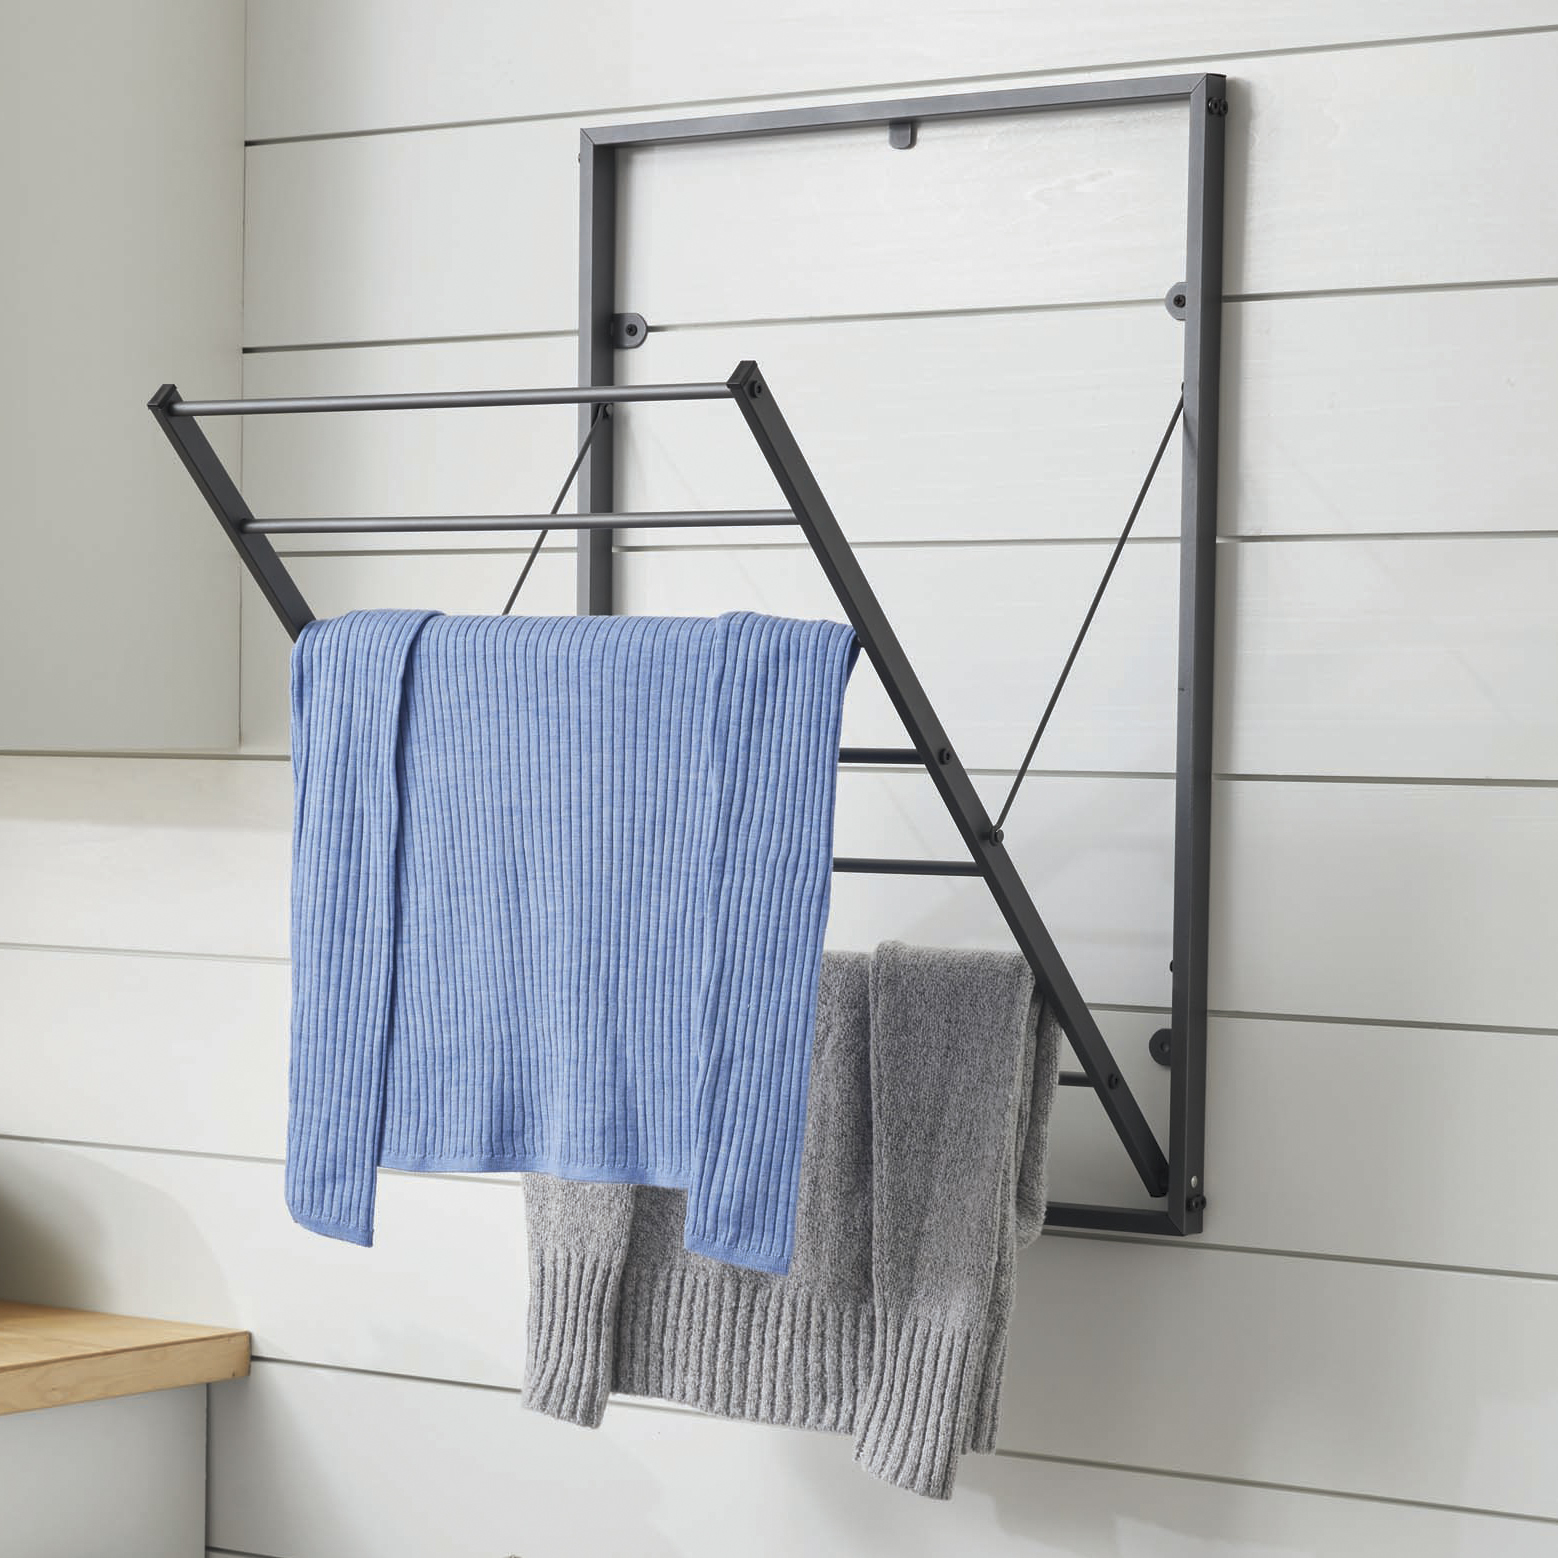 Better Homes & Gardens Charleston Collection Steel Wall Mounted Foldable Drying Rack Grey